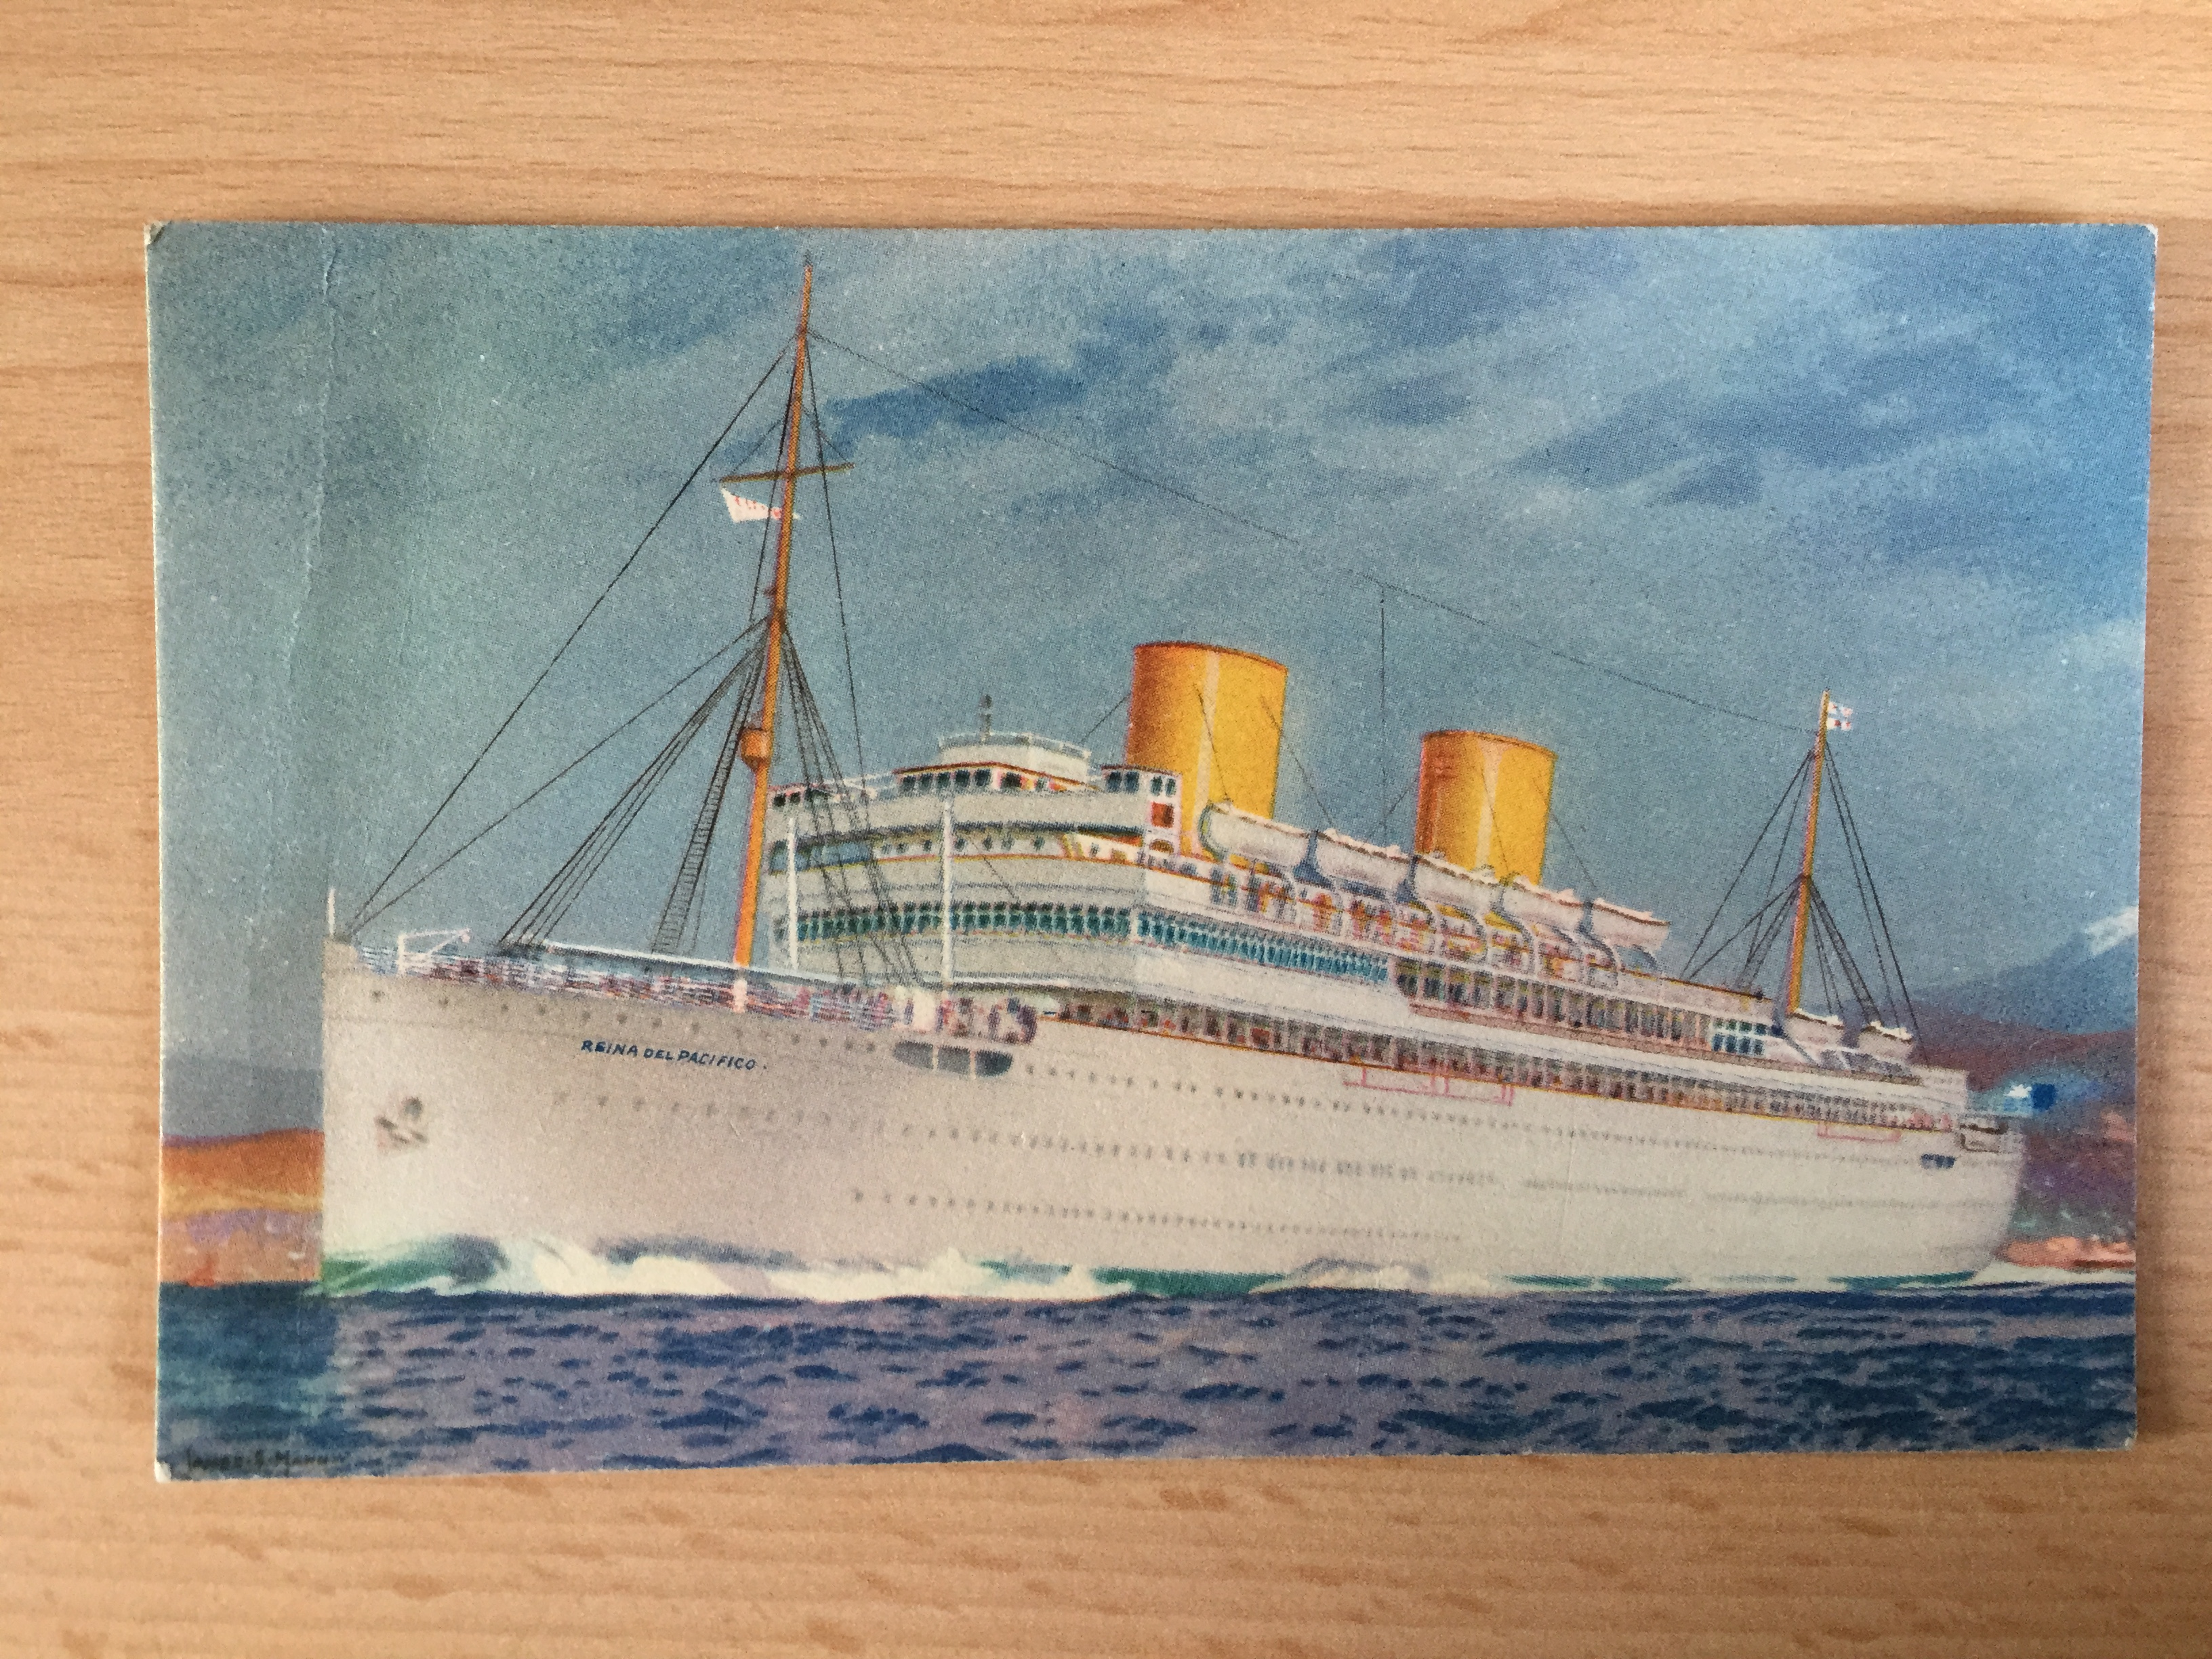 UNUSED COLOUR POSTCARD FROM THE VESSEL THE REINA DEL PACIFICO FROM THE PACIFIC STEAM NAVIGATION COMPANY